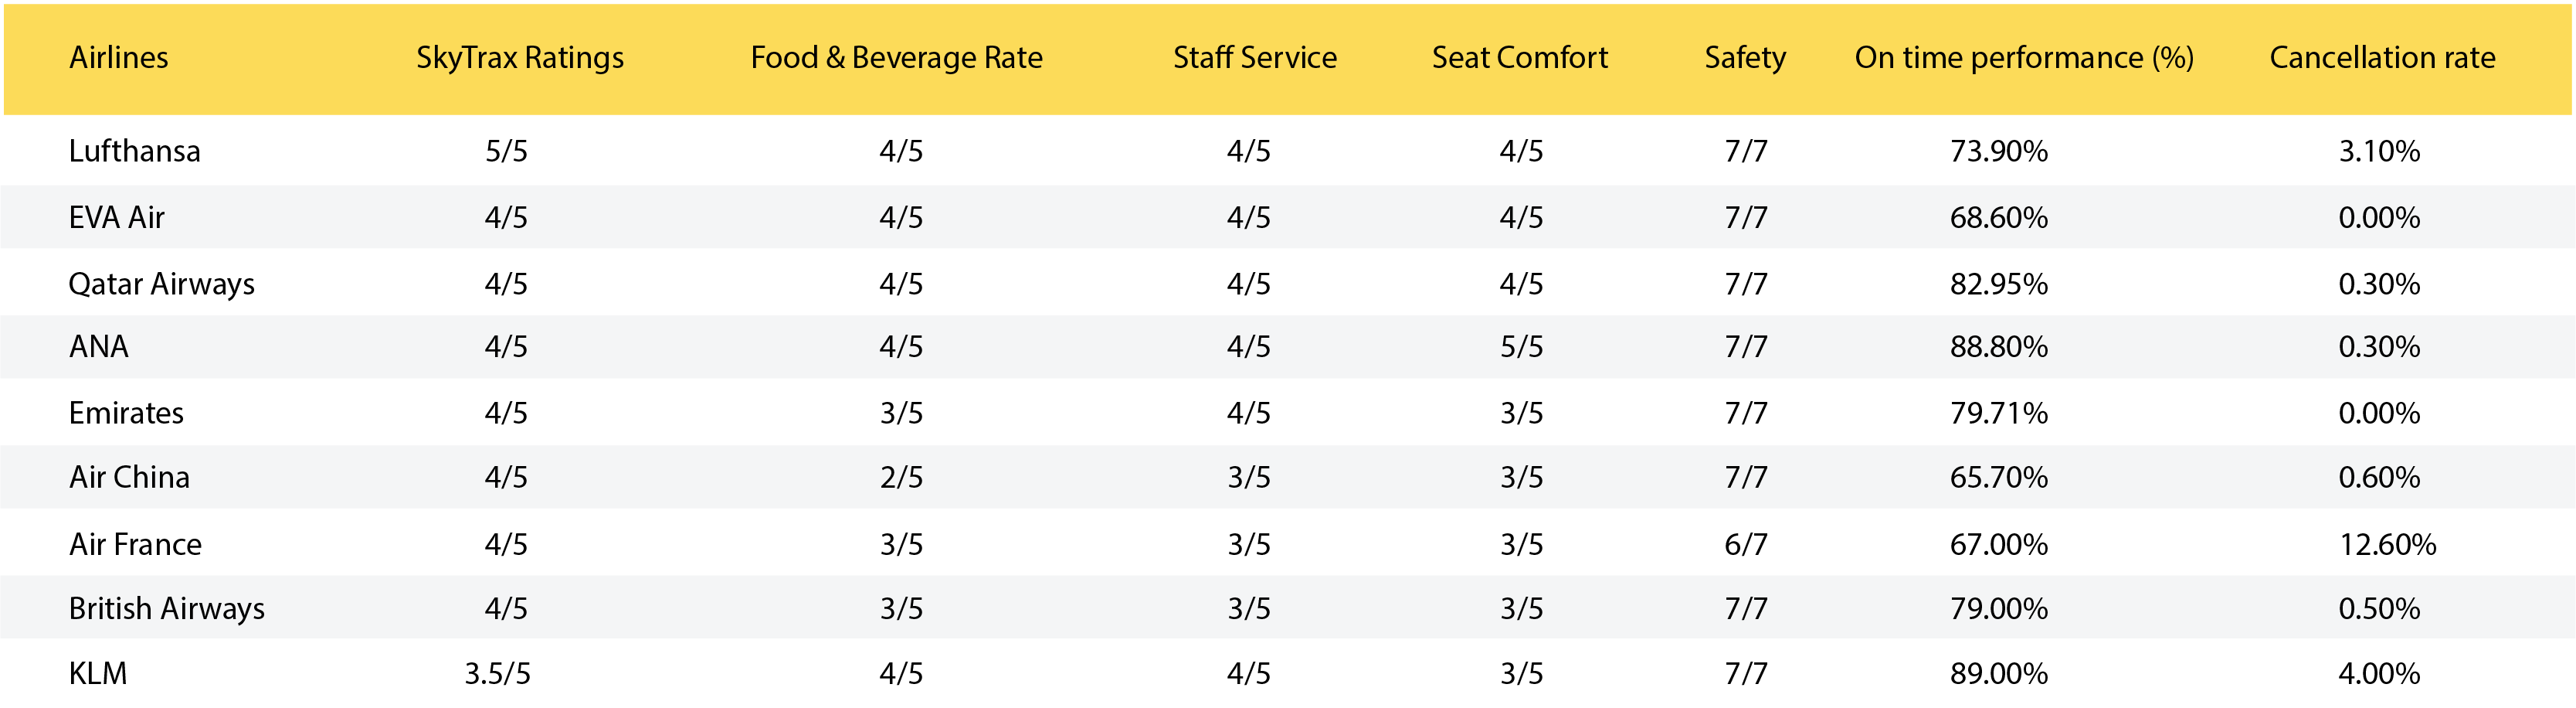 Airlines Rating